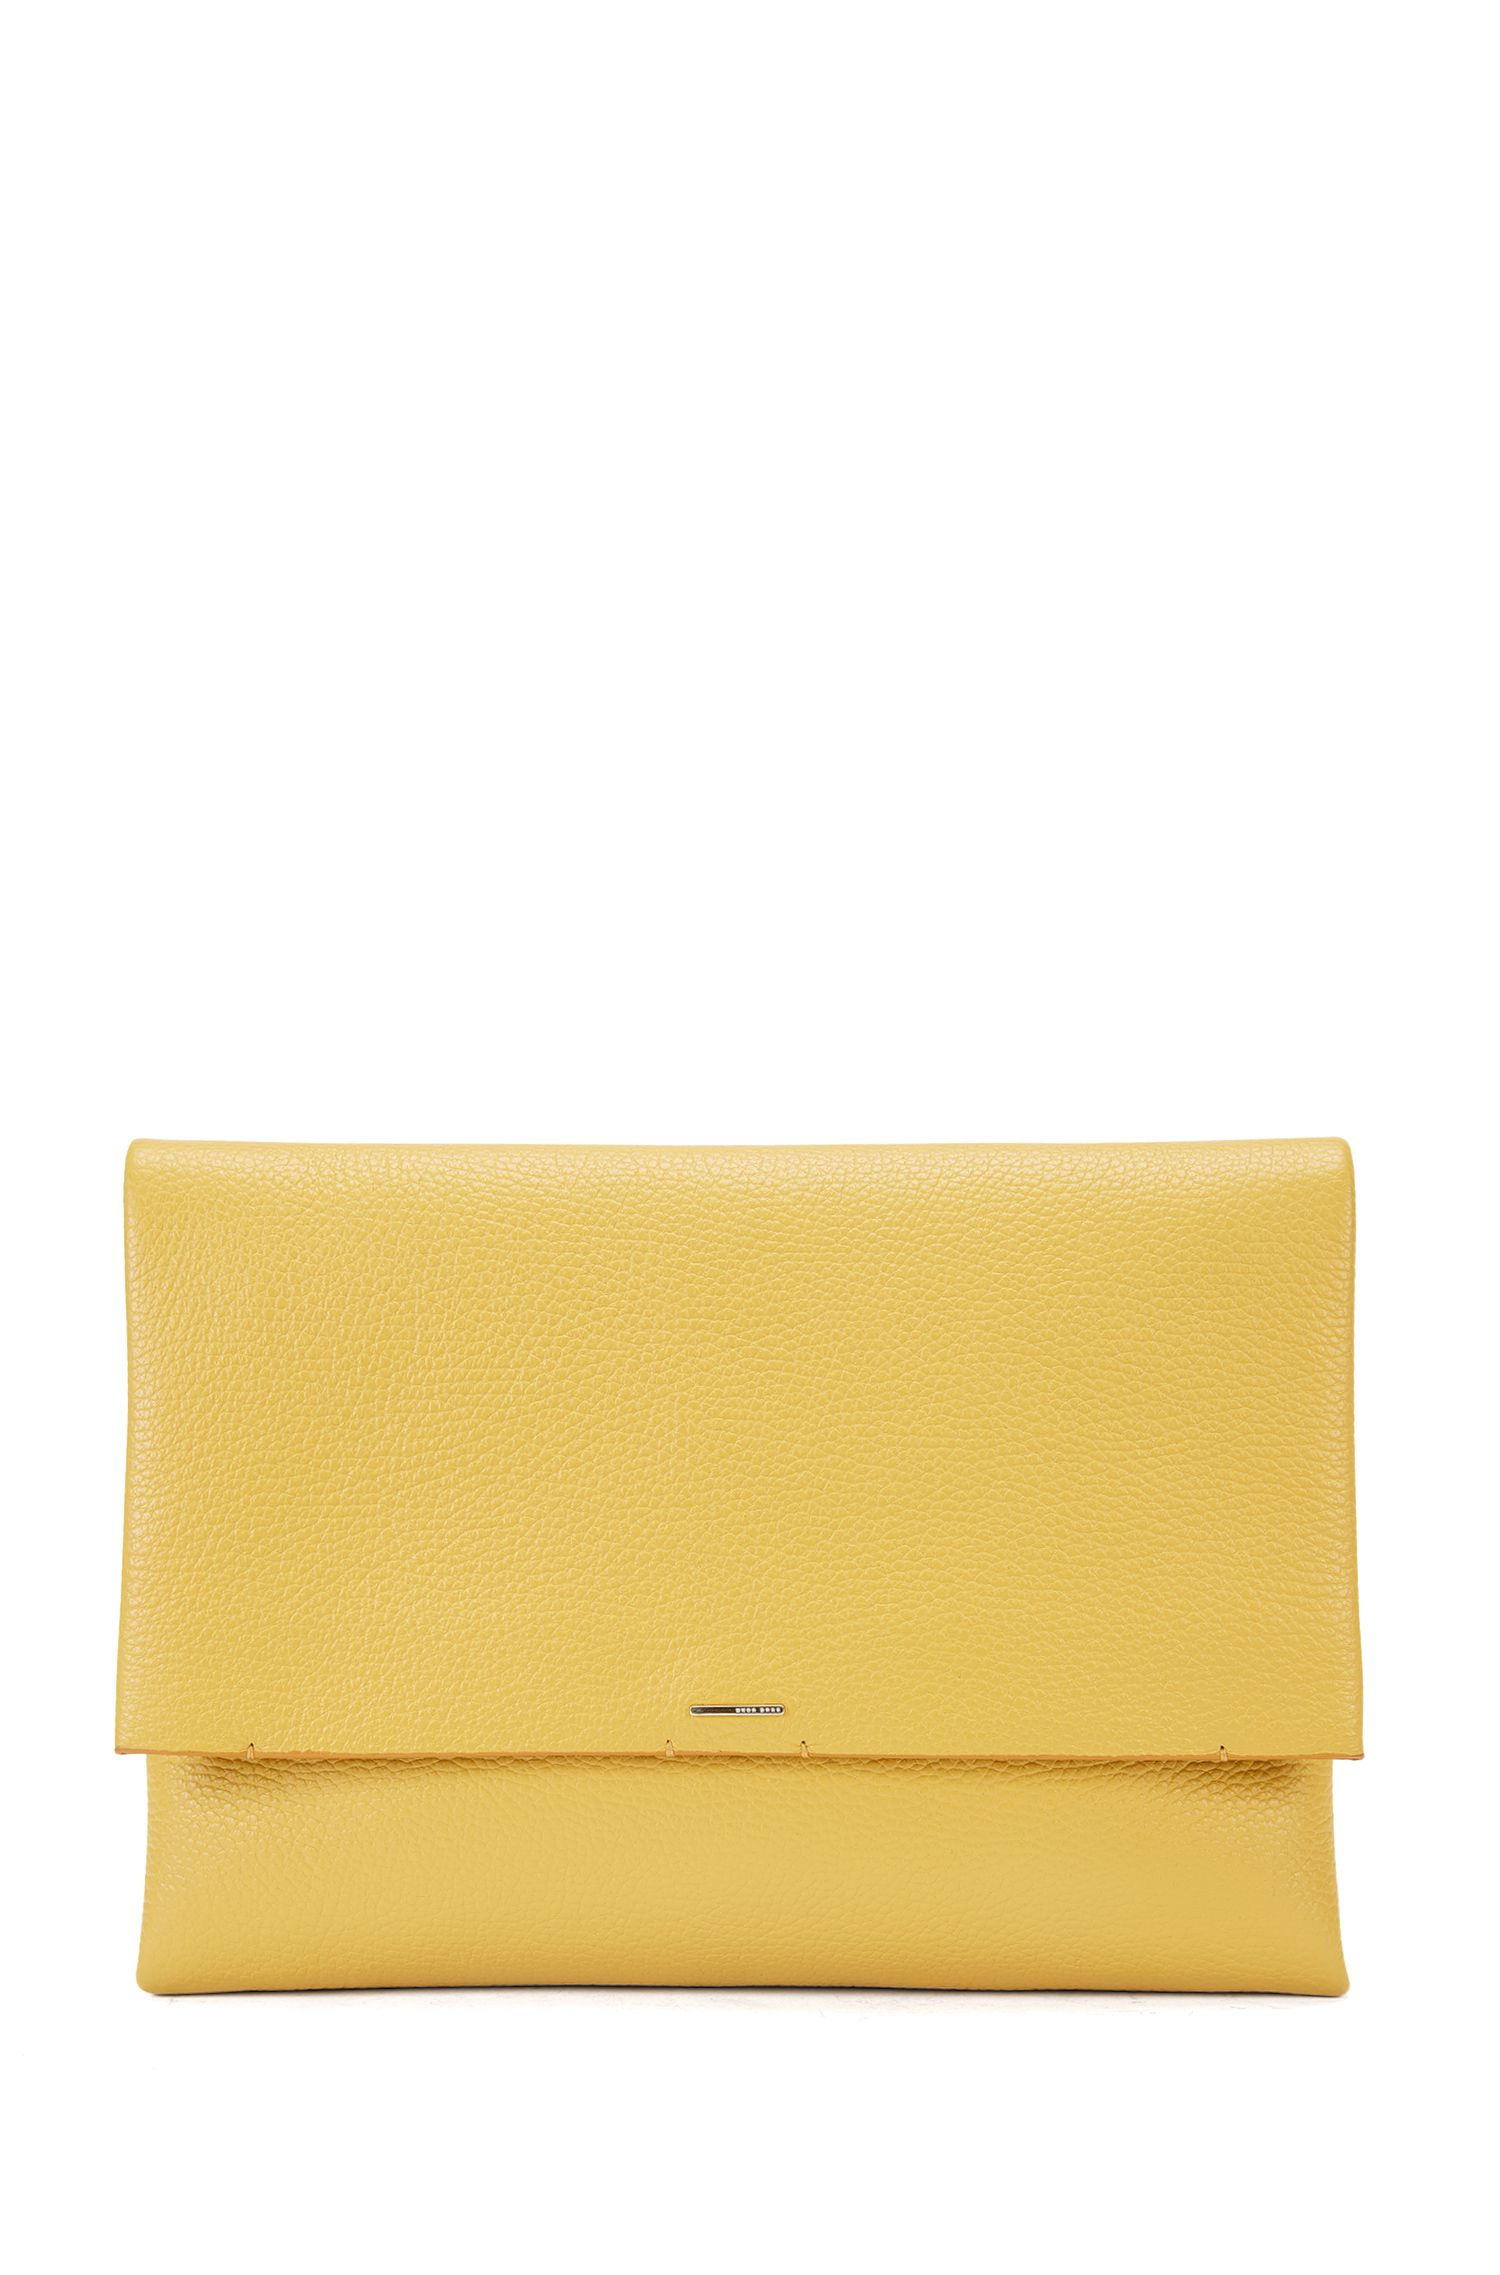 BOSS Luxury Staple Clutch in unlined Italian leather with chain strap